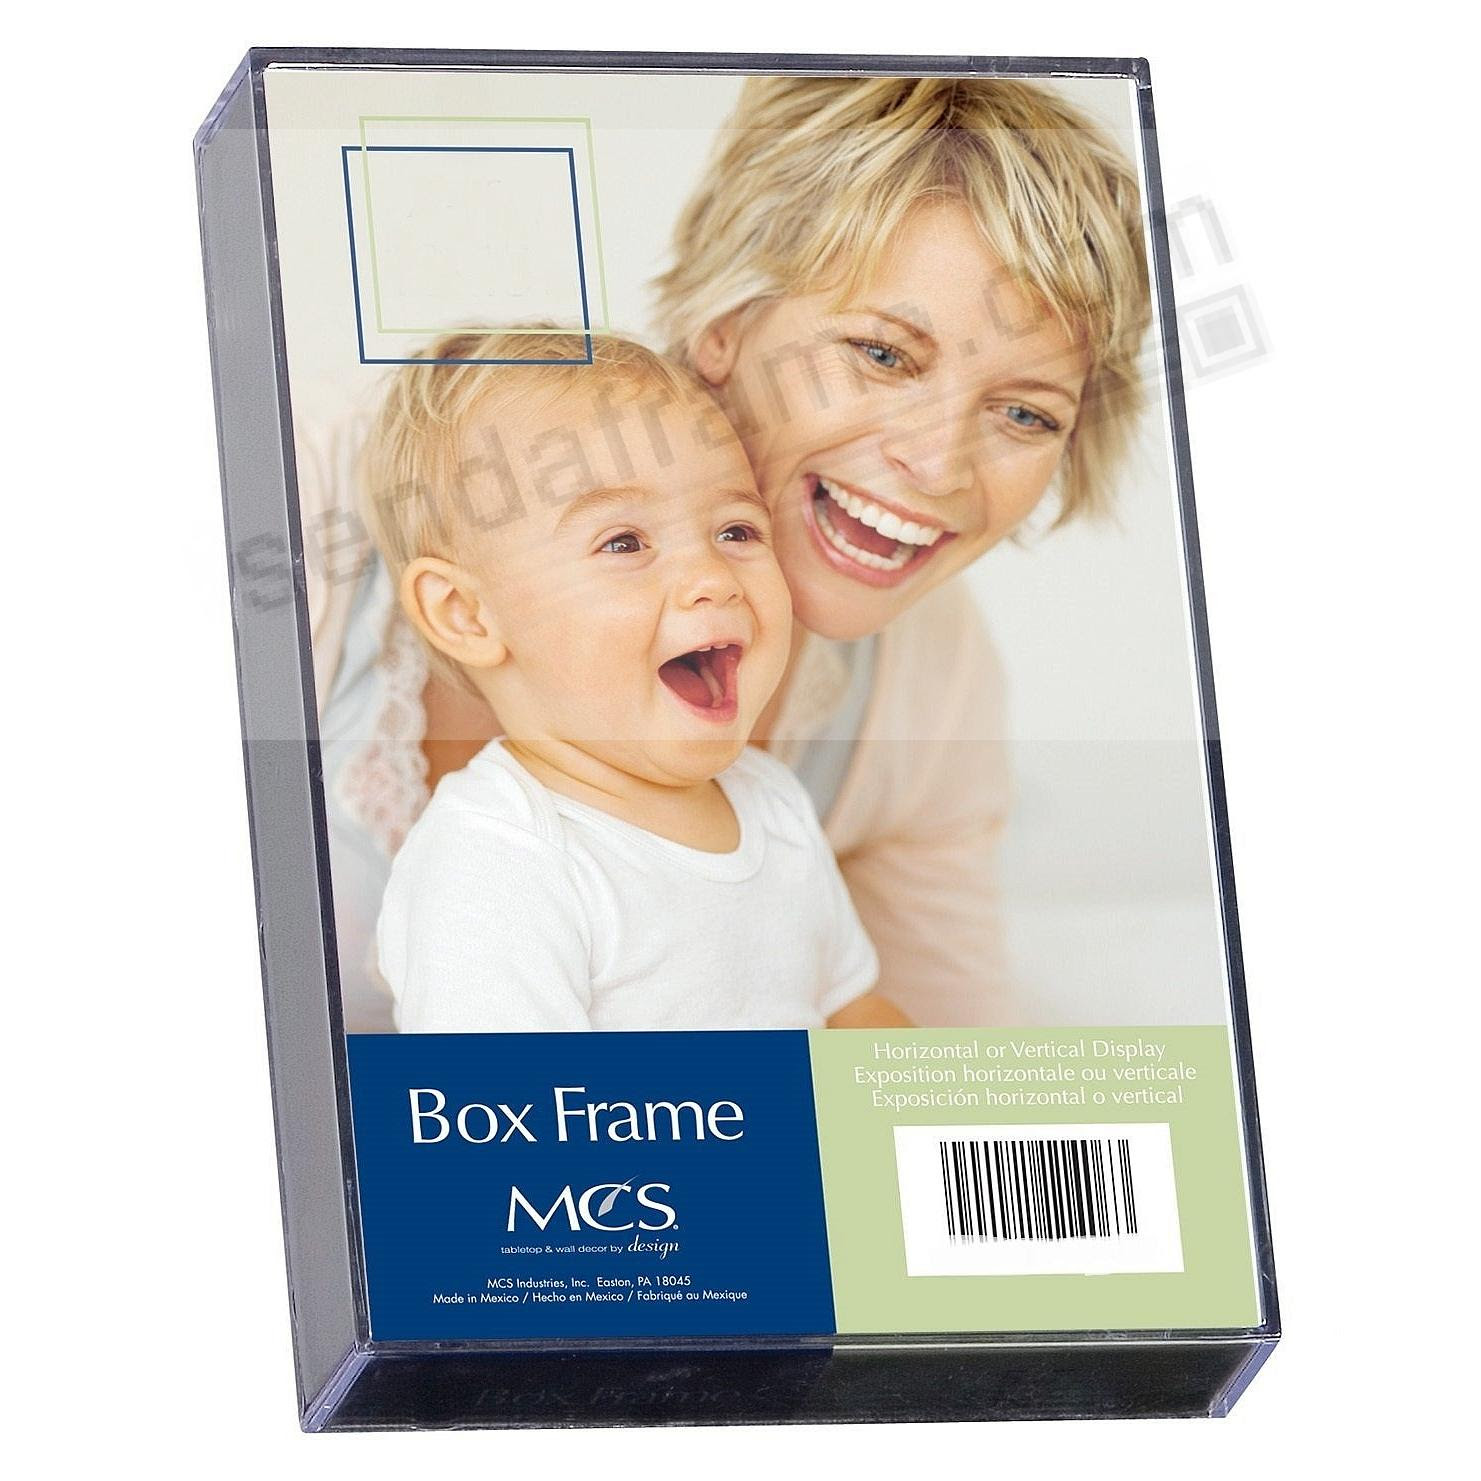 The Acrylic Box 8x12 Frame Picture Frames Photo Albums